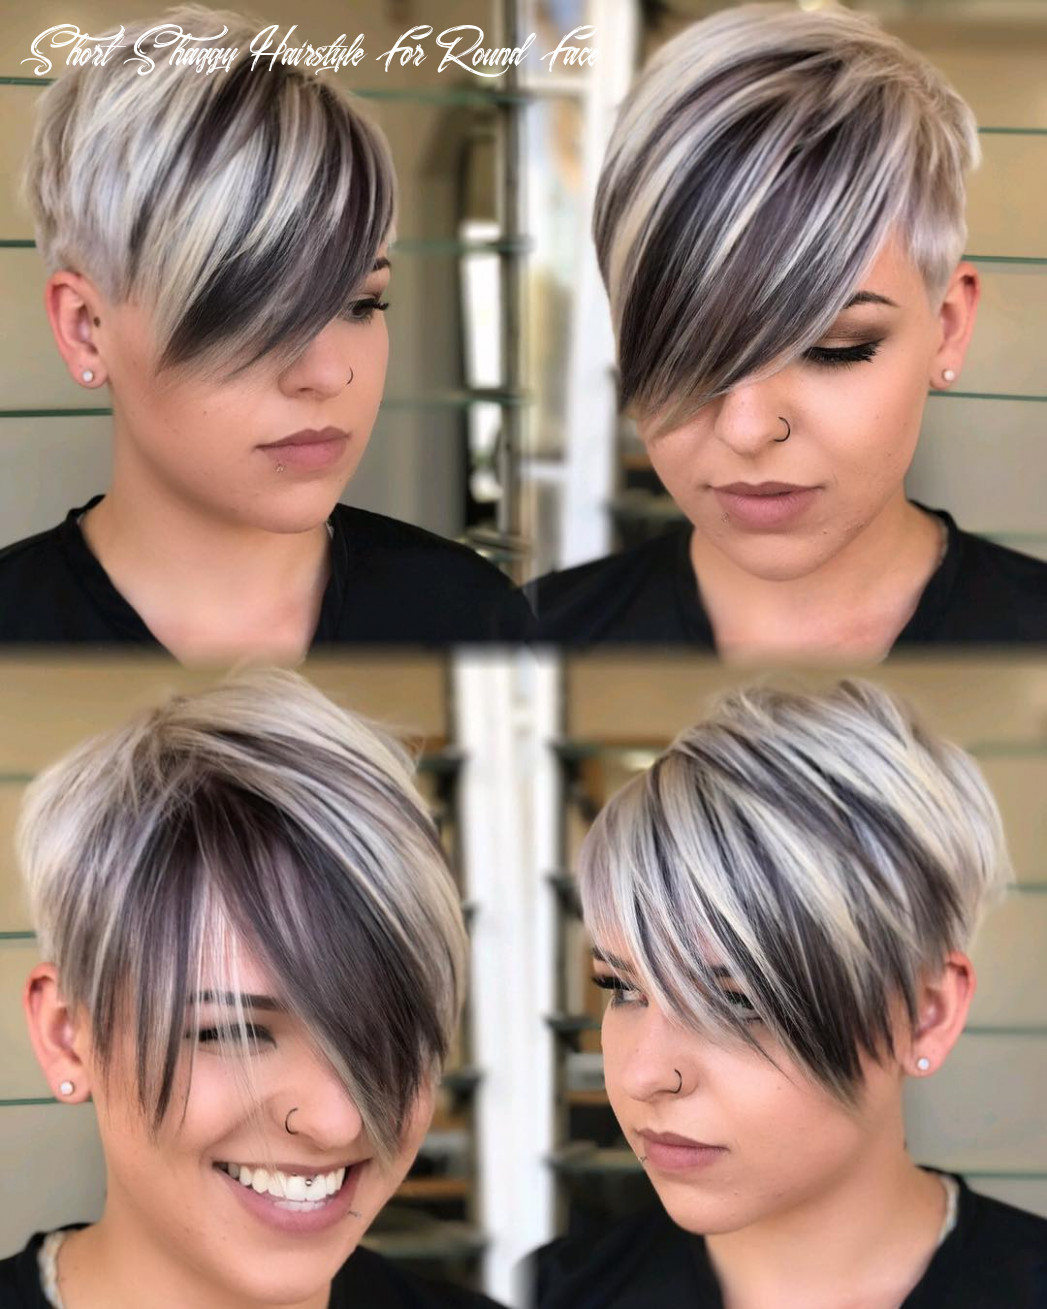 12 short hairstyles for round faces with slimming effect hadviser short shaggy hairstyle for round face